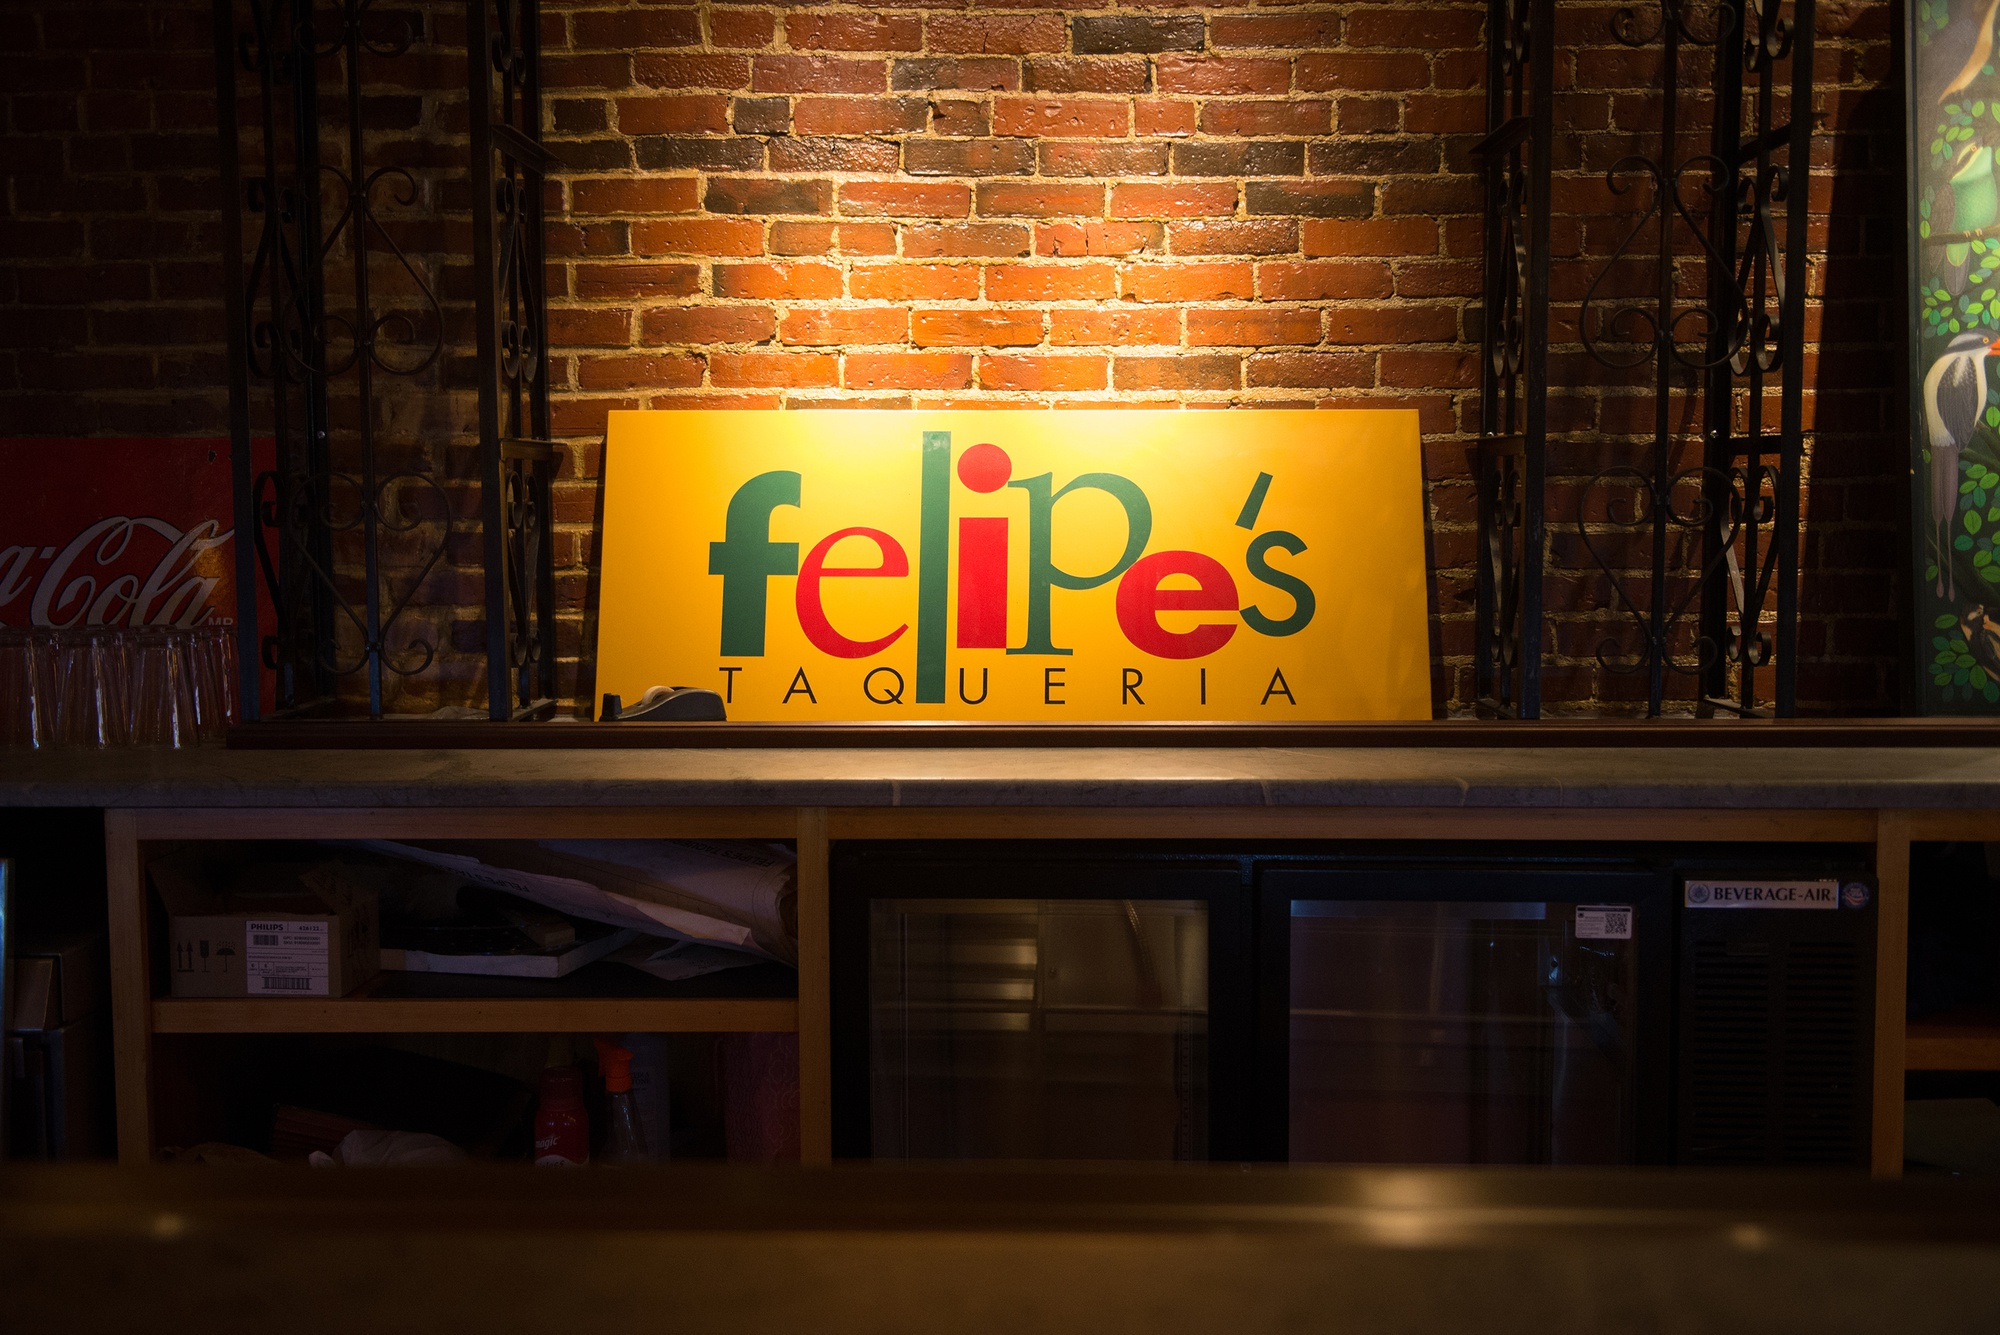 Felipe's Taqueria is expecting to serve liquor in the coming weeks at the bar in its new location on Brattle St. This follows a months-long delay to obtain their liquor license.